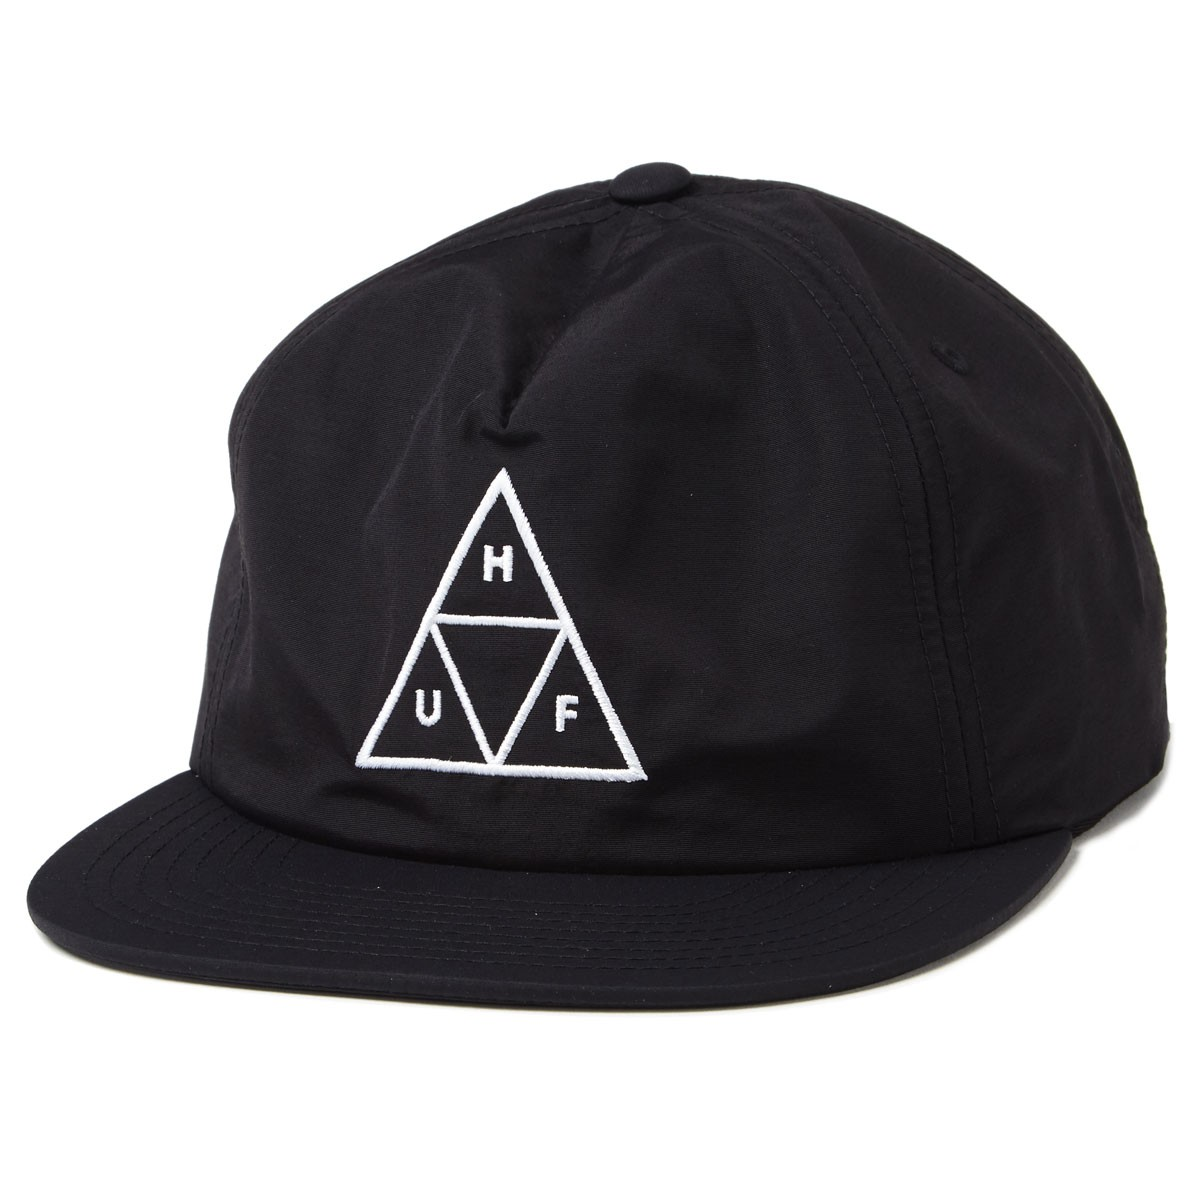 b32ea259a9b Huf Triple Triangle Unstructured Snapback Hat - Black